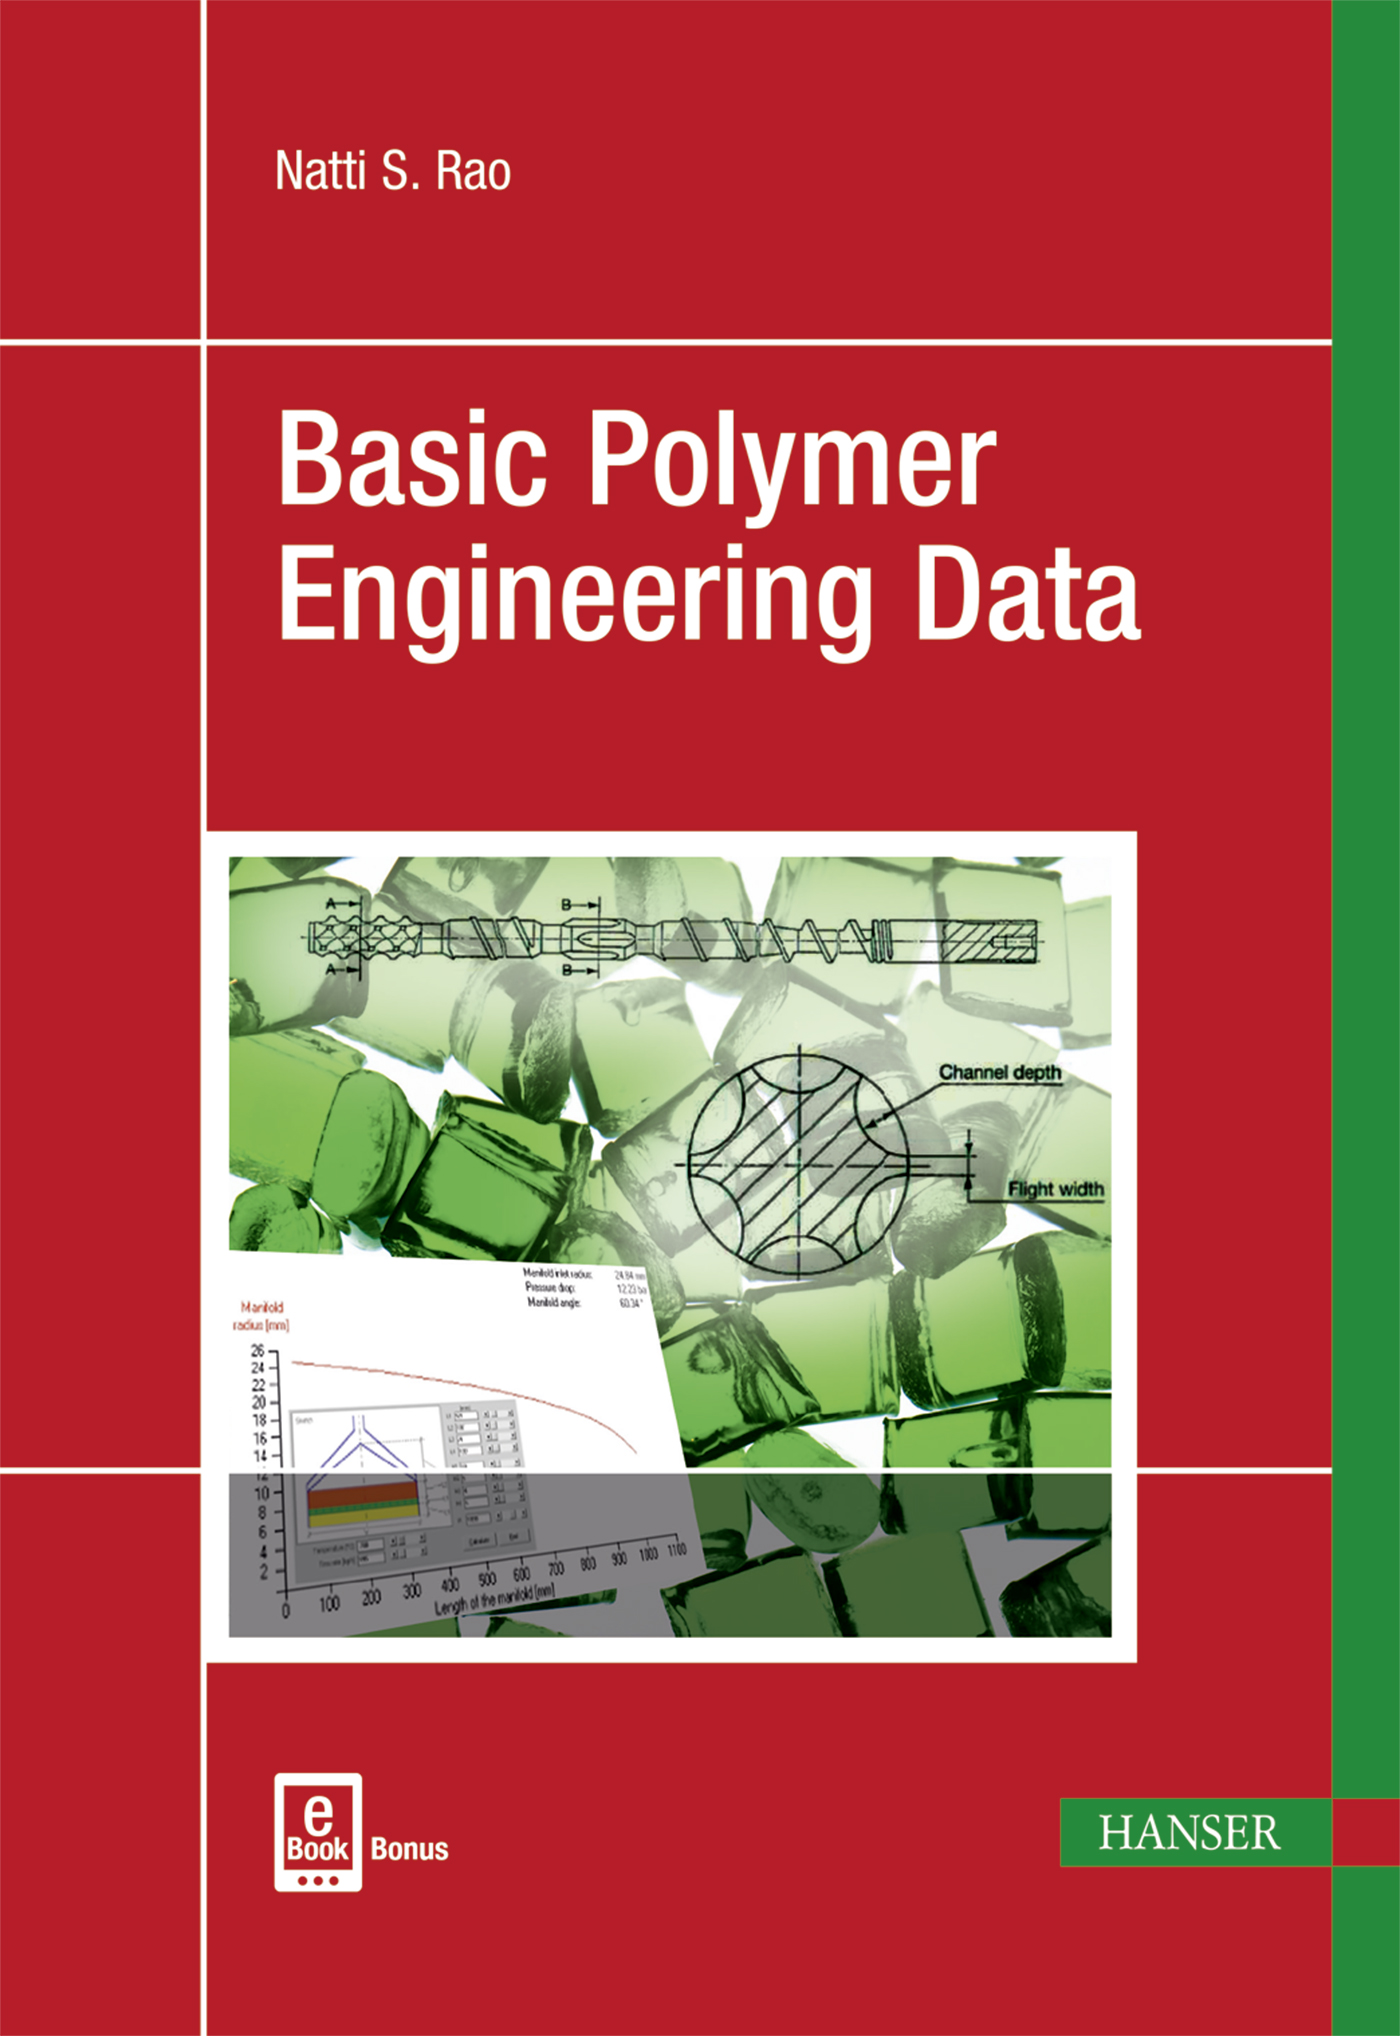 Rao, Basic Polymer Engineering Data, 978-1-56990-649-1